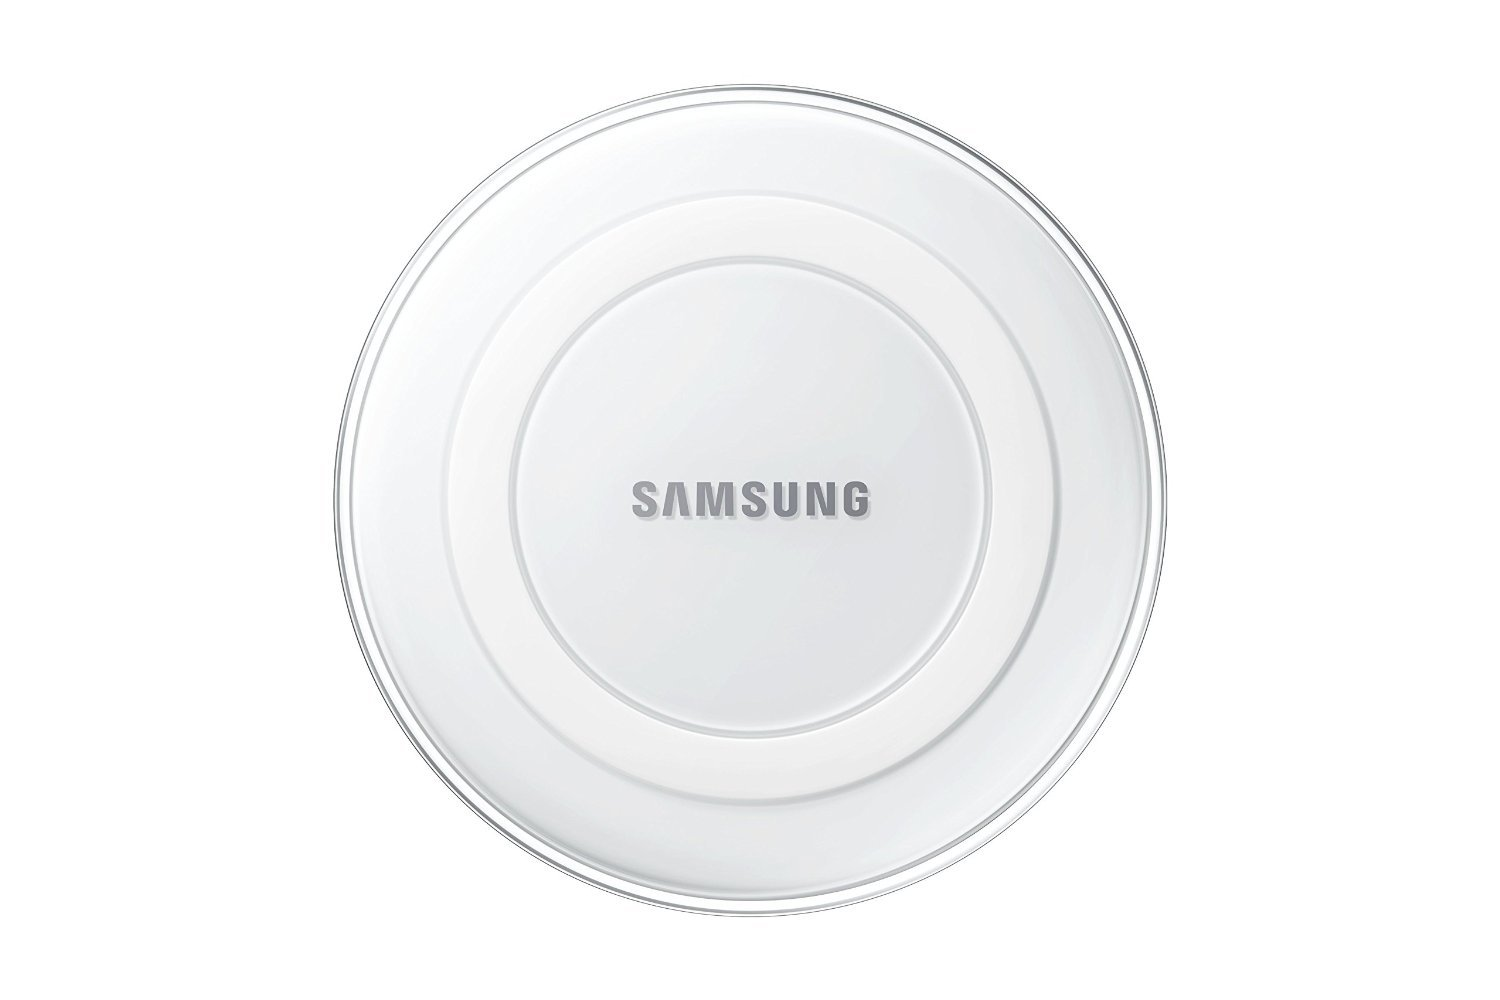 Samsung Wireless Charging Pad w/ 2A Wall Charger Retail Packaging - Black  image 2